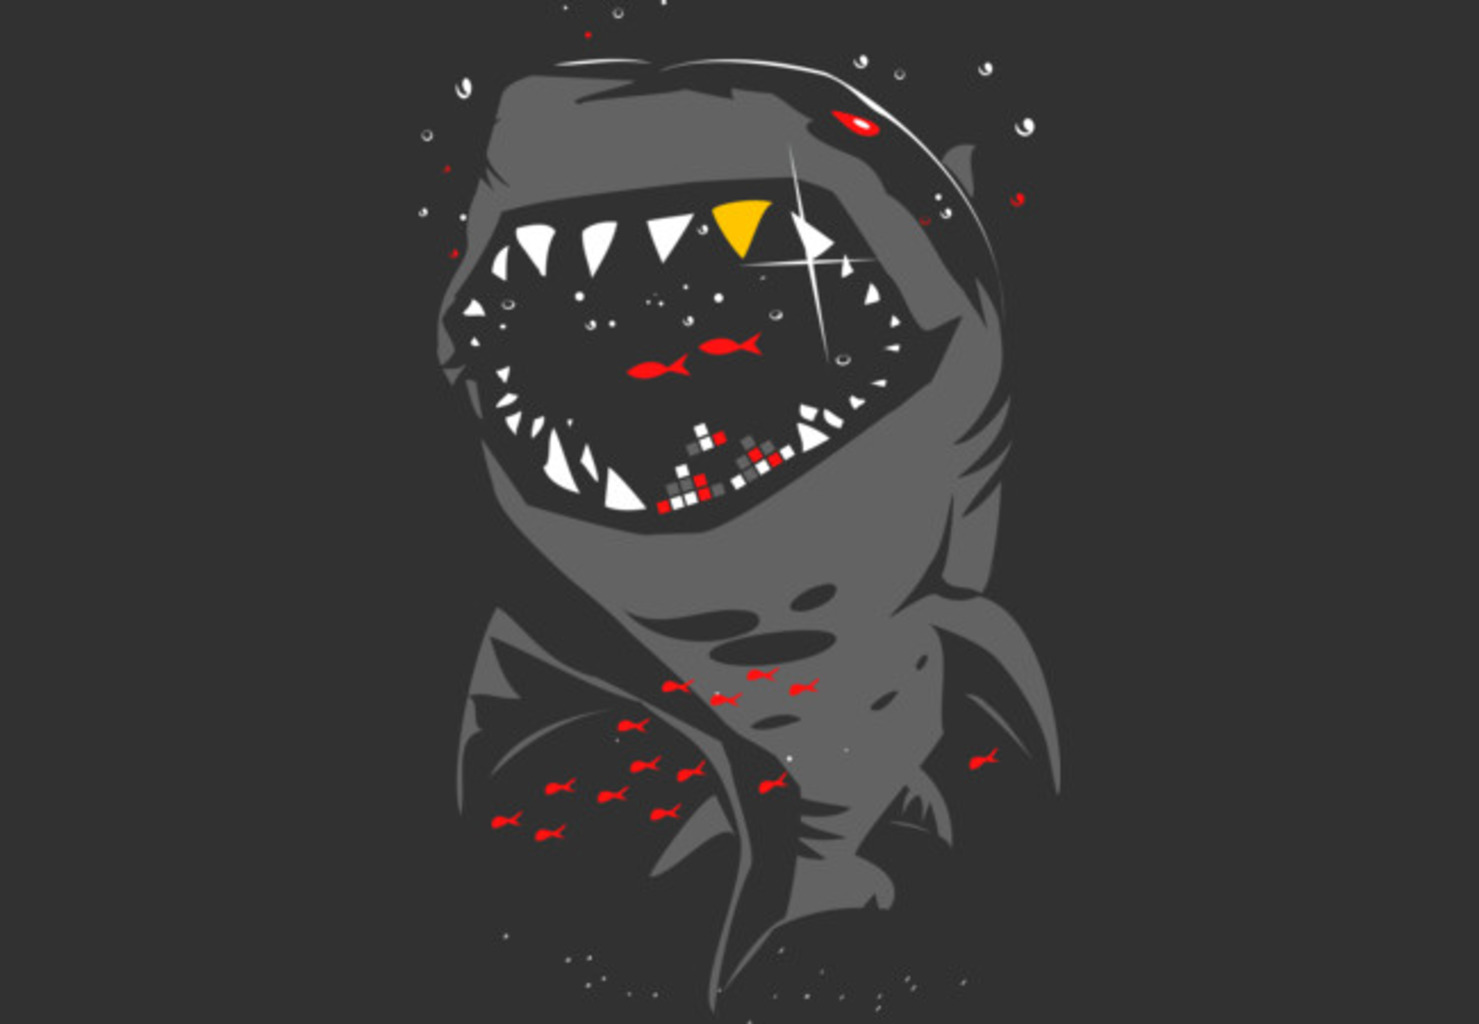 Design by Humans: Limited Edition - Shark with Pixelated Teeth